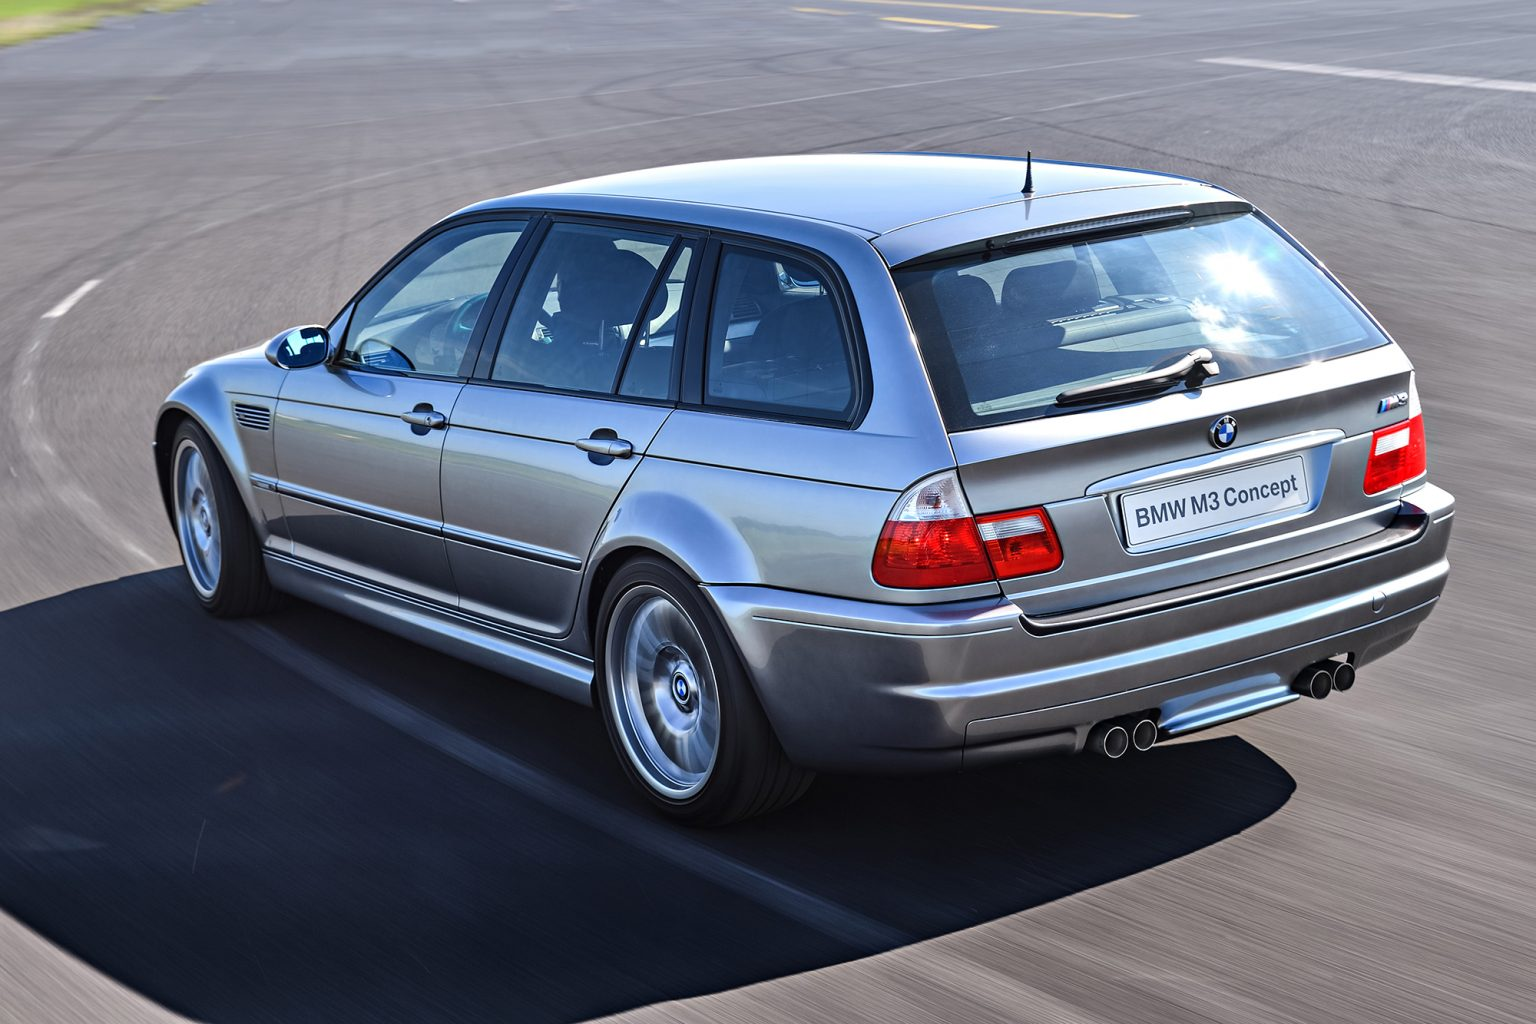 p90236642_highres_the-bmw-m3-touring-c